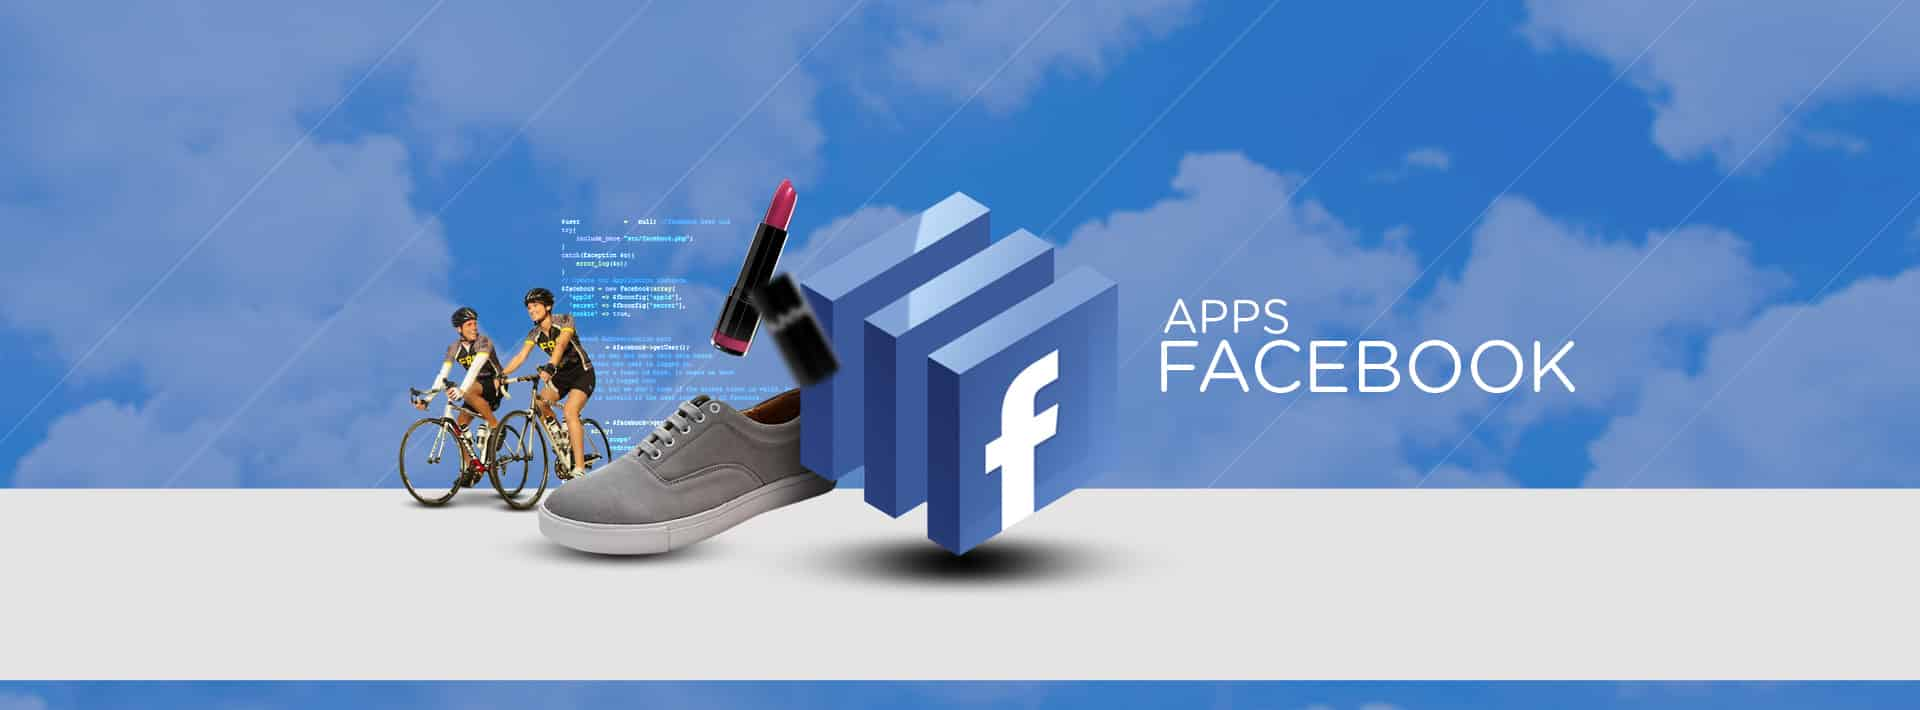 best facebook marketing tips for business